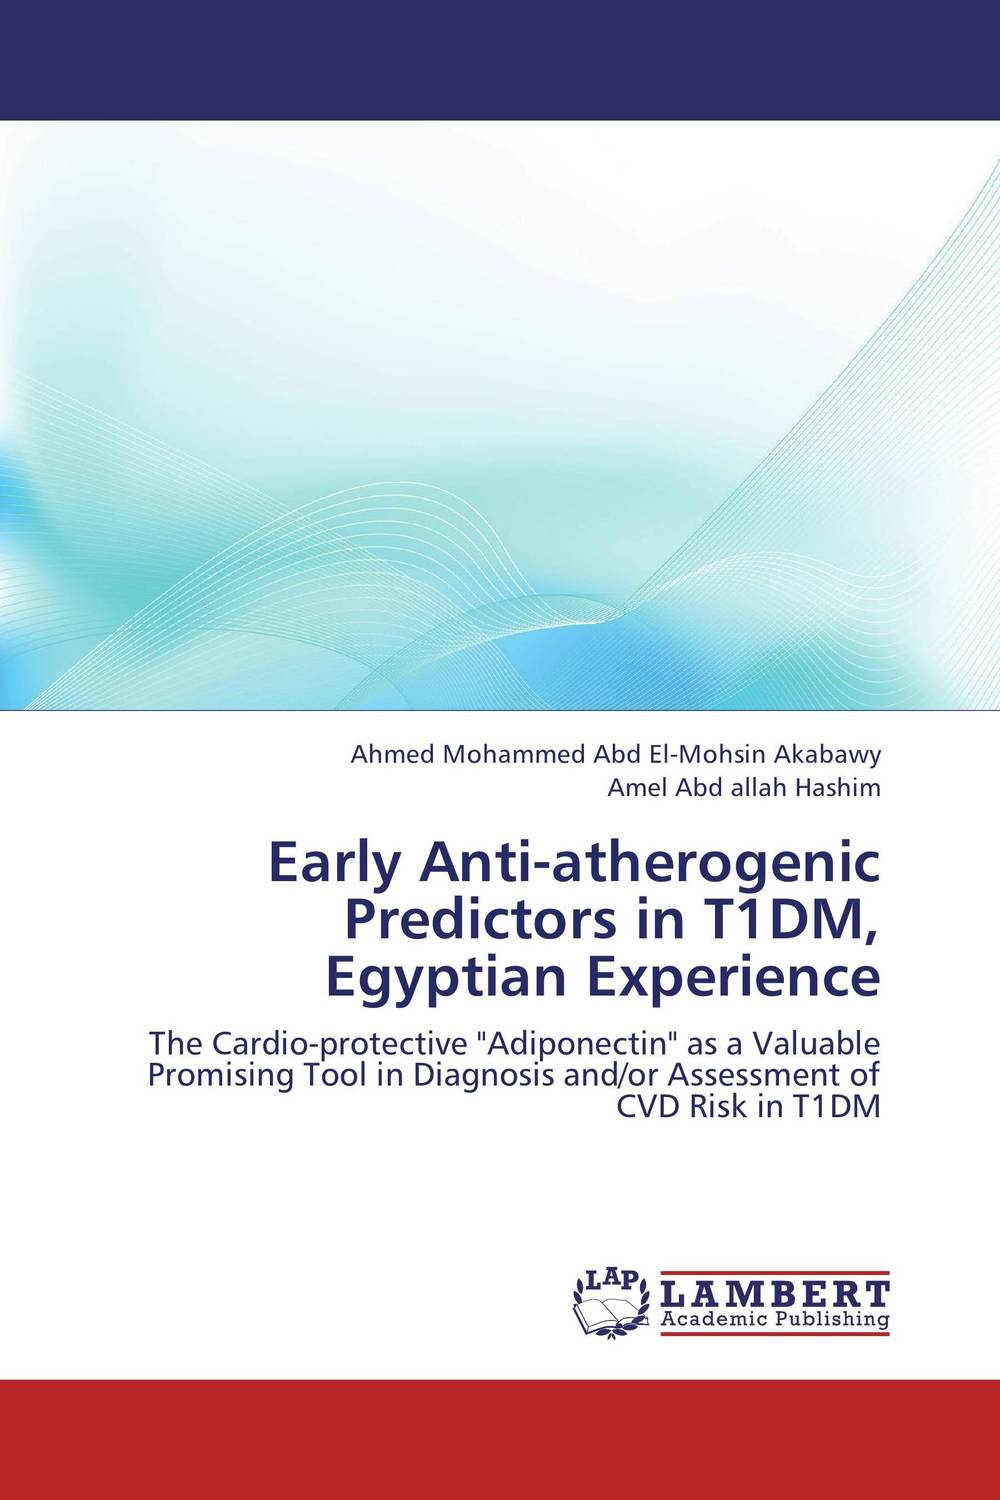 Early Anti-atherogenic Predictors in T1DM, Egyptian Experience cyrus karuga and herbert oburra risk factors for early complications of tracheostomies at knh